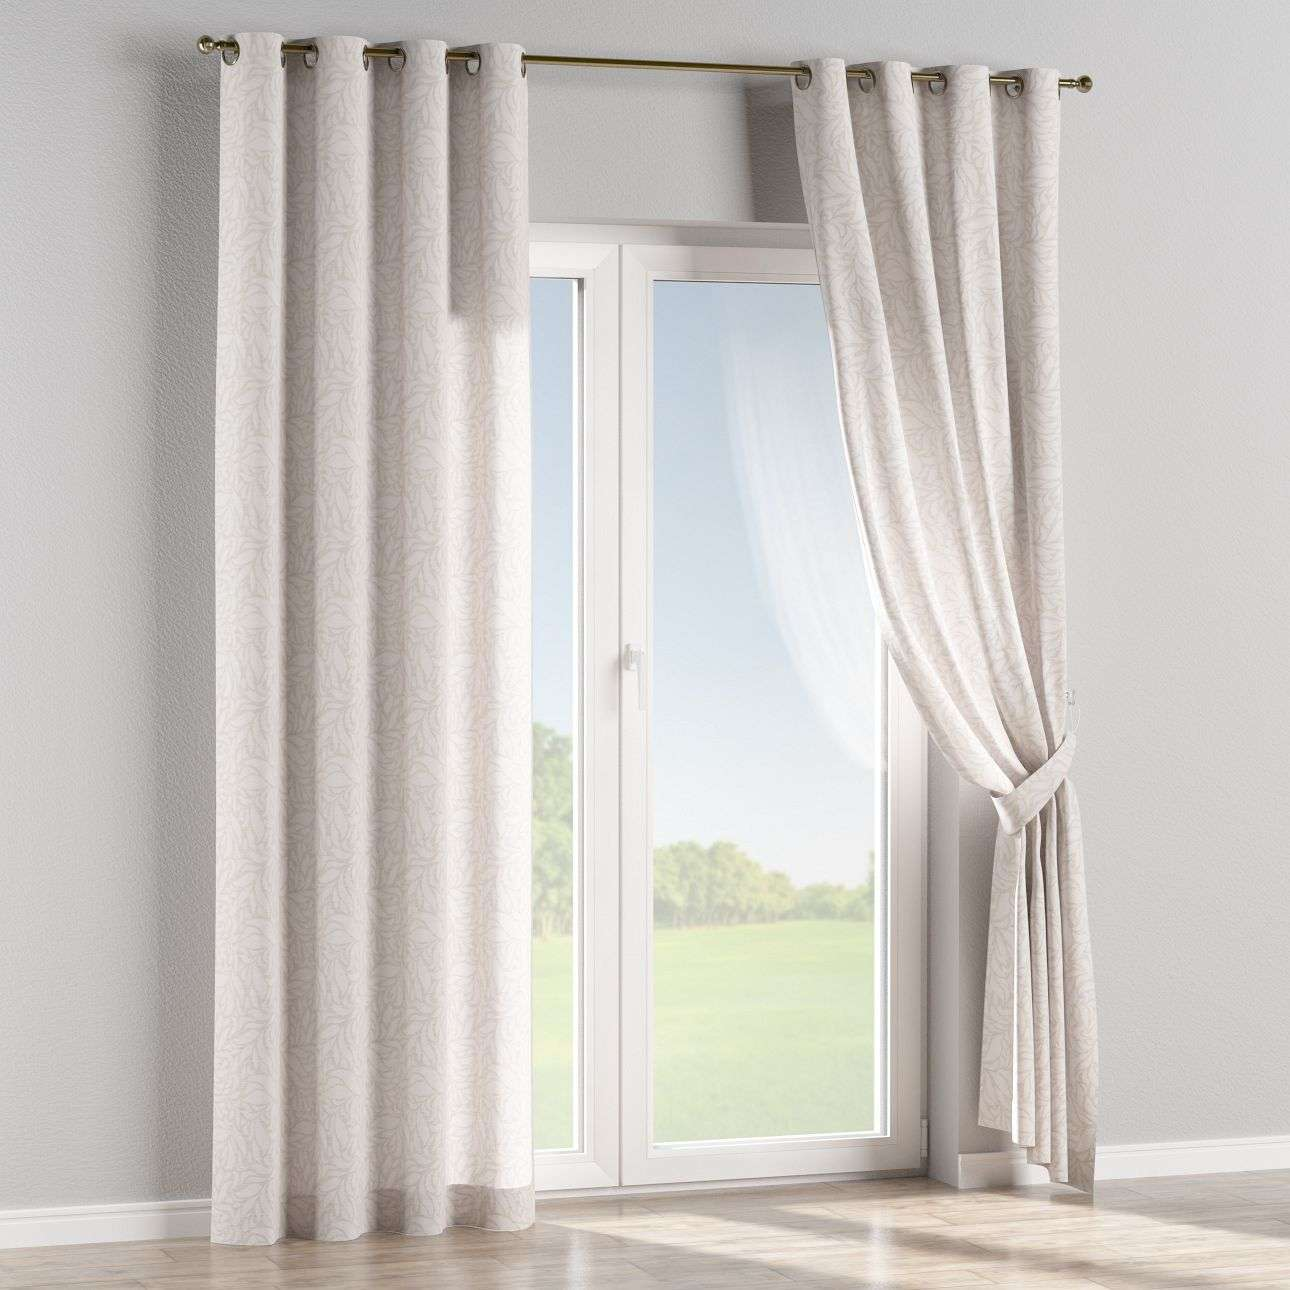 Eyelet curtains 130 x 260 cm (51 x 102 inch) in collection Venice, fabric: 140-50